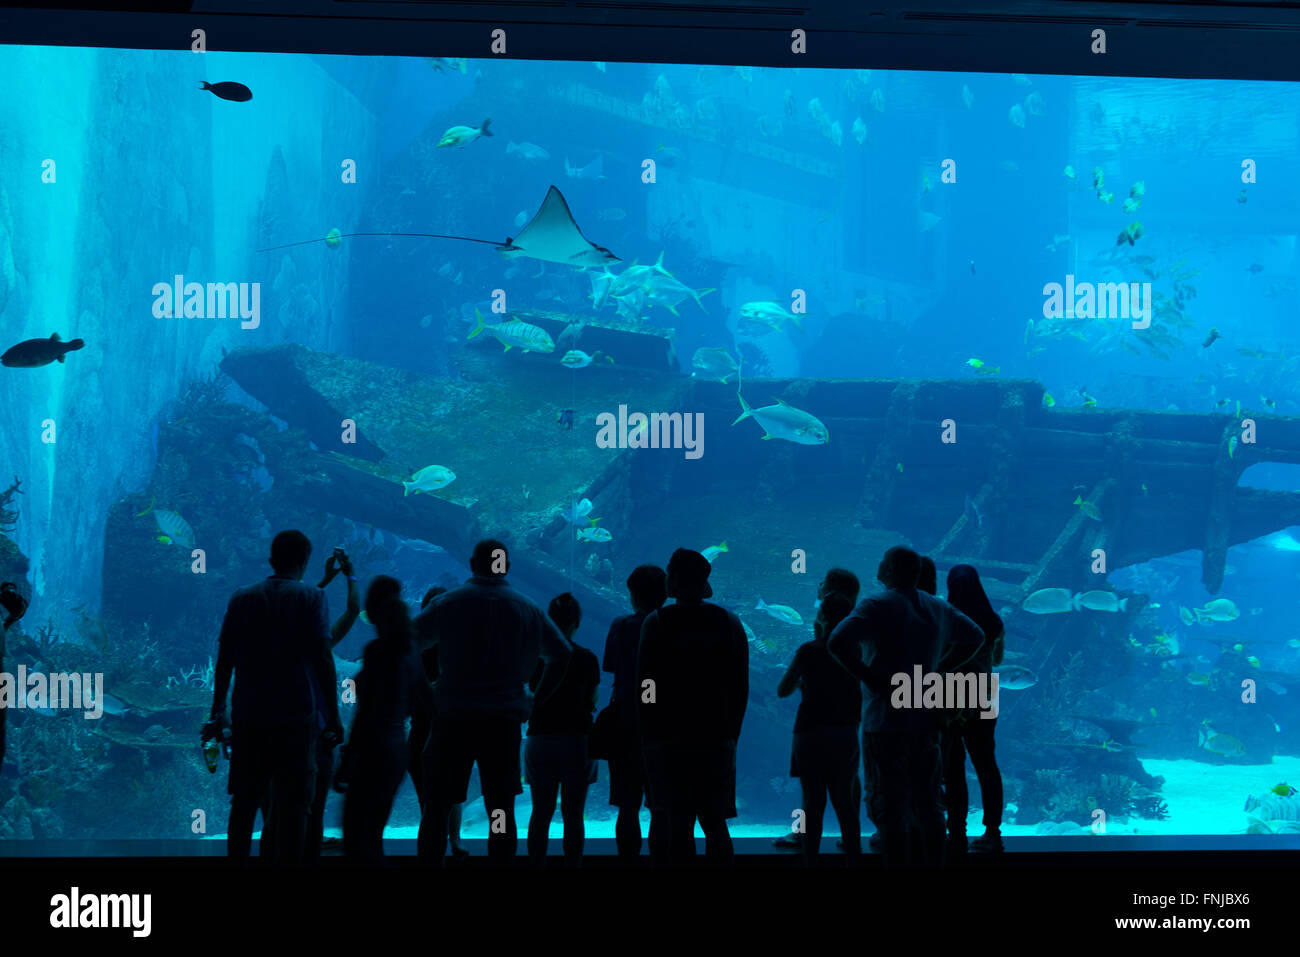 Fish aquarium in sentosa - Silhouette Of People In Front Of Huge Aquarium With Stingray And Fishes On Sentosa Island Singapore